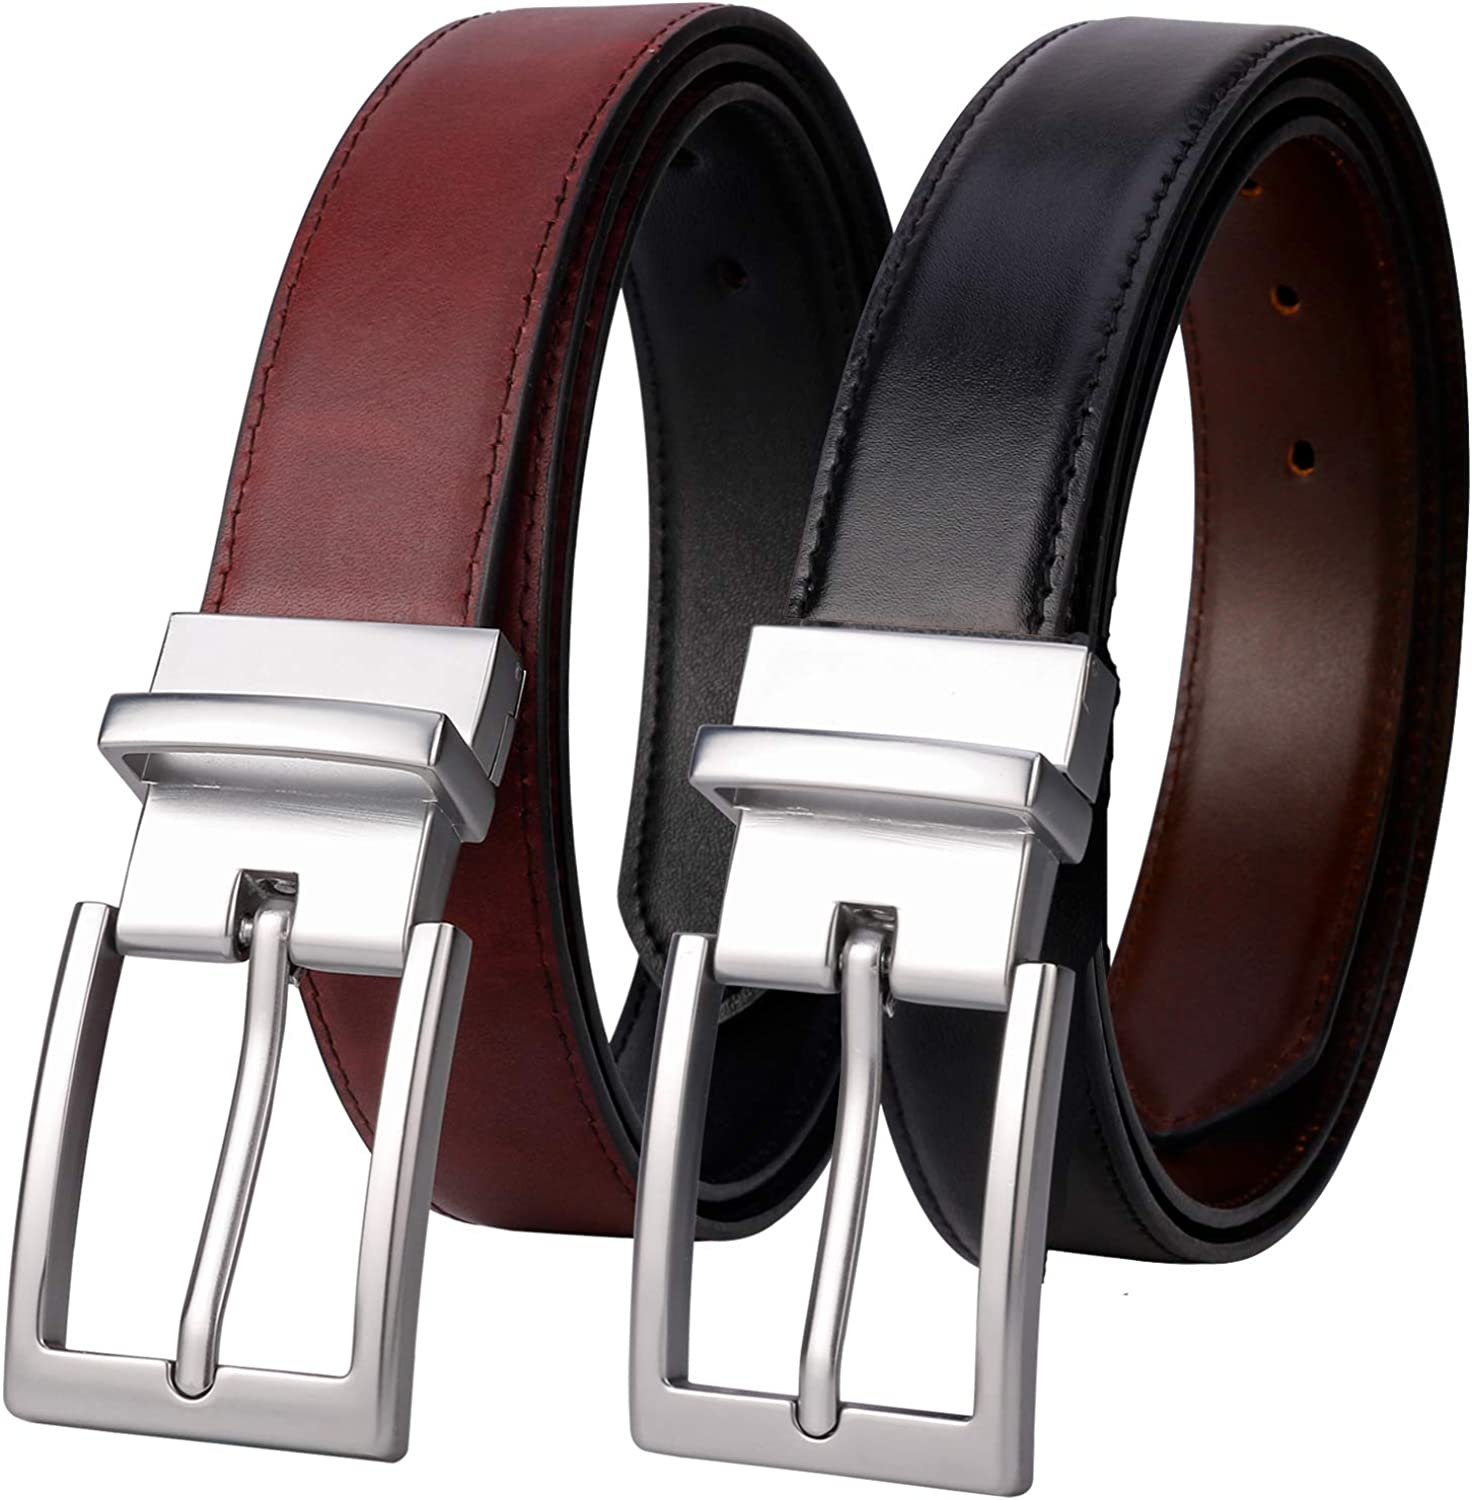 Lavemi Mens Belt Reversible 100% Italian Cow Leather Dress Casual Belts for  men, One Reverse for 2 Colors, Trim to Fit at Amazon Men's Clothing store